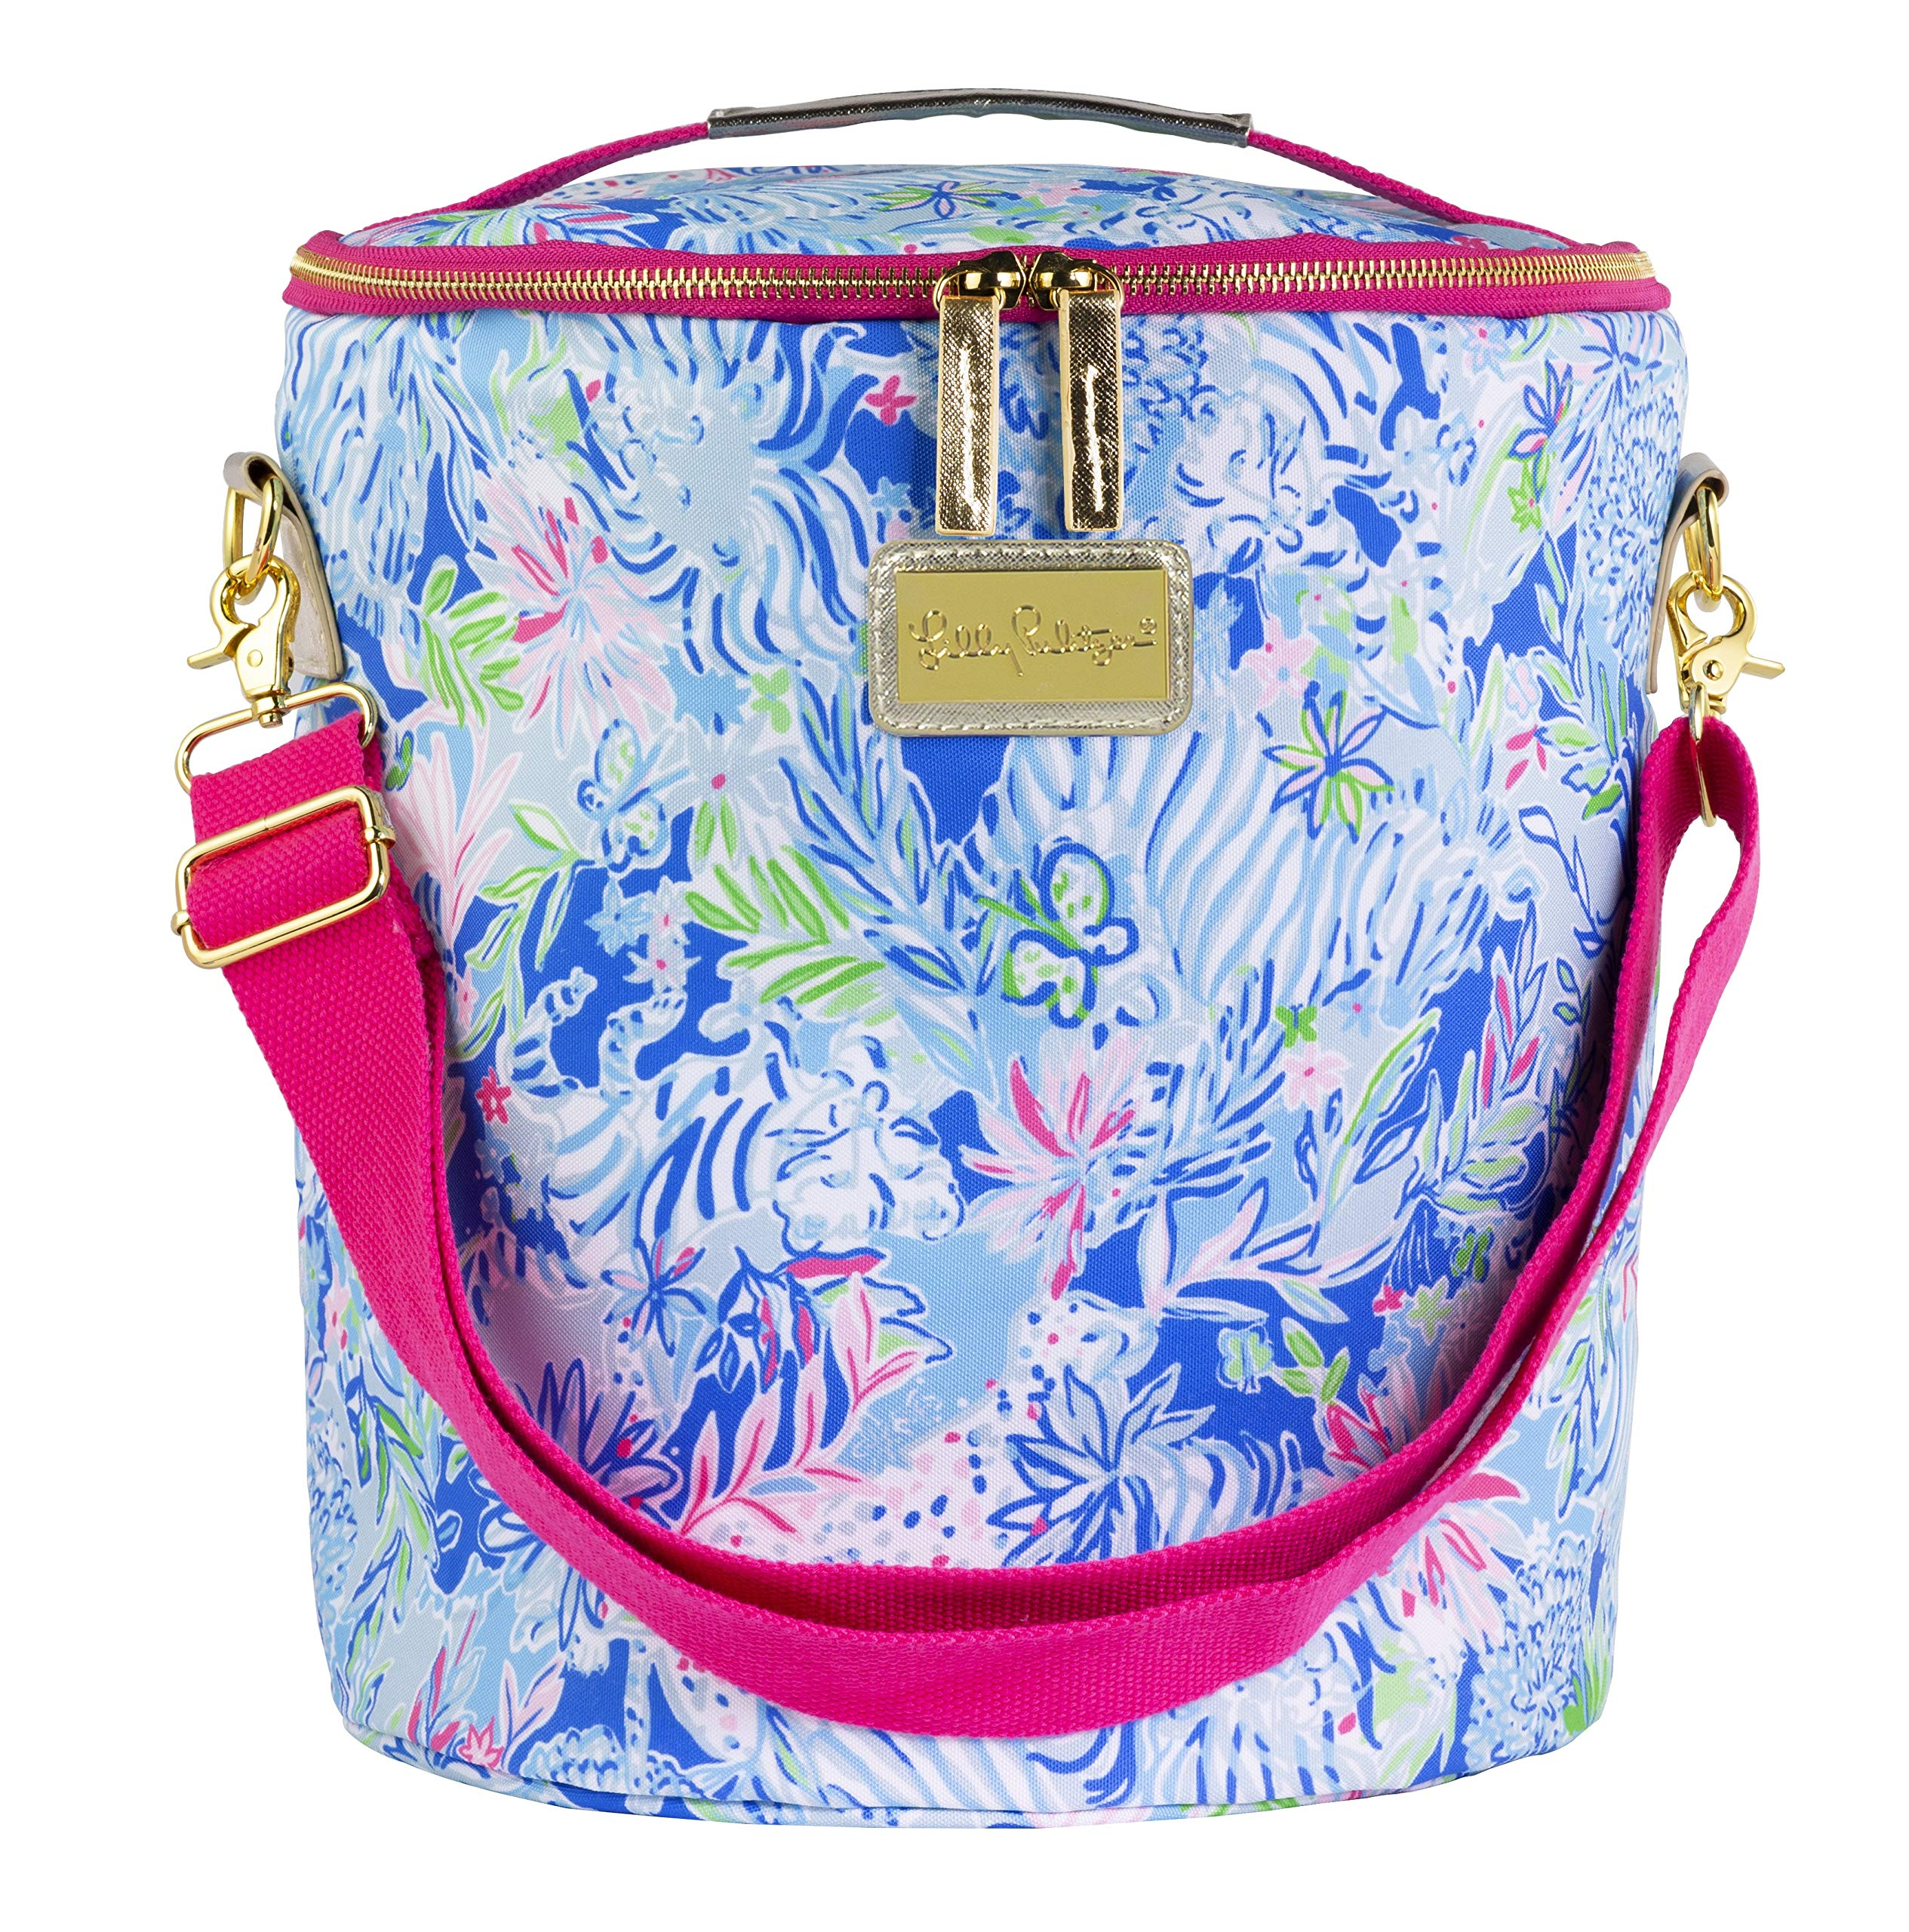 Lilly Pulitzer Insulated Beach Cooler with Adjustable Strap, Lion Around